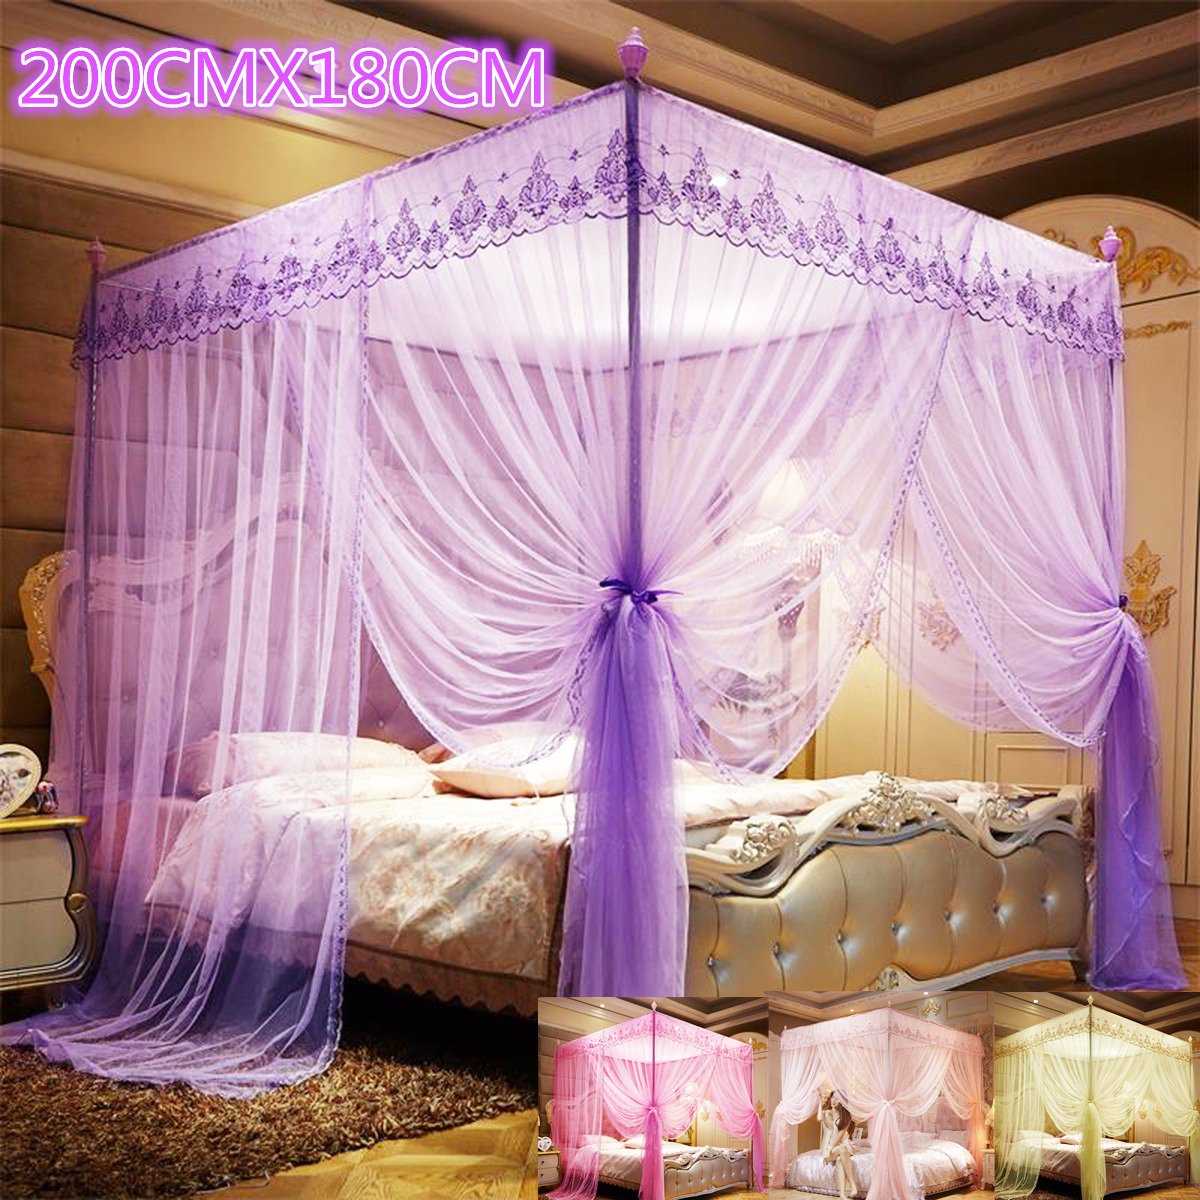 - Full Four Corner Post Elegant Mosquito Net Bed Canopy Set Mosquito